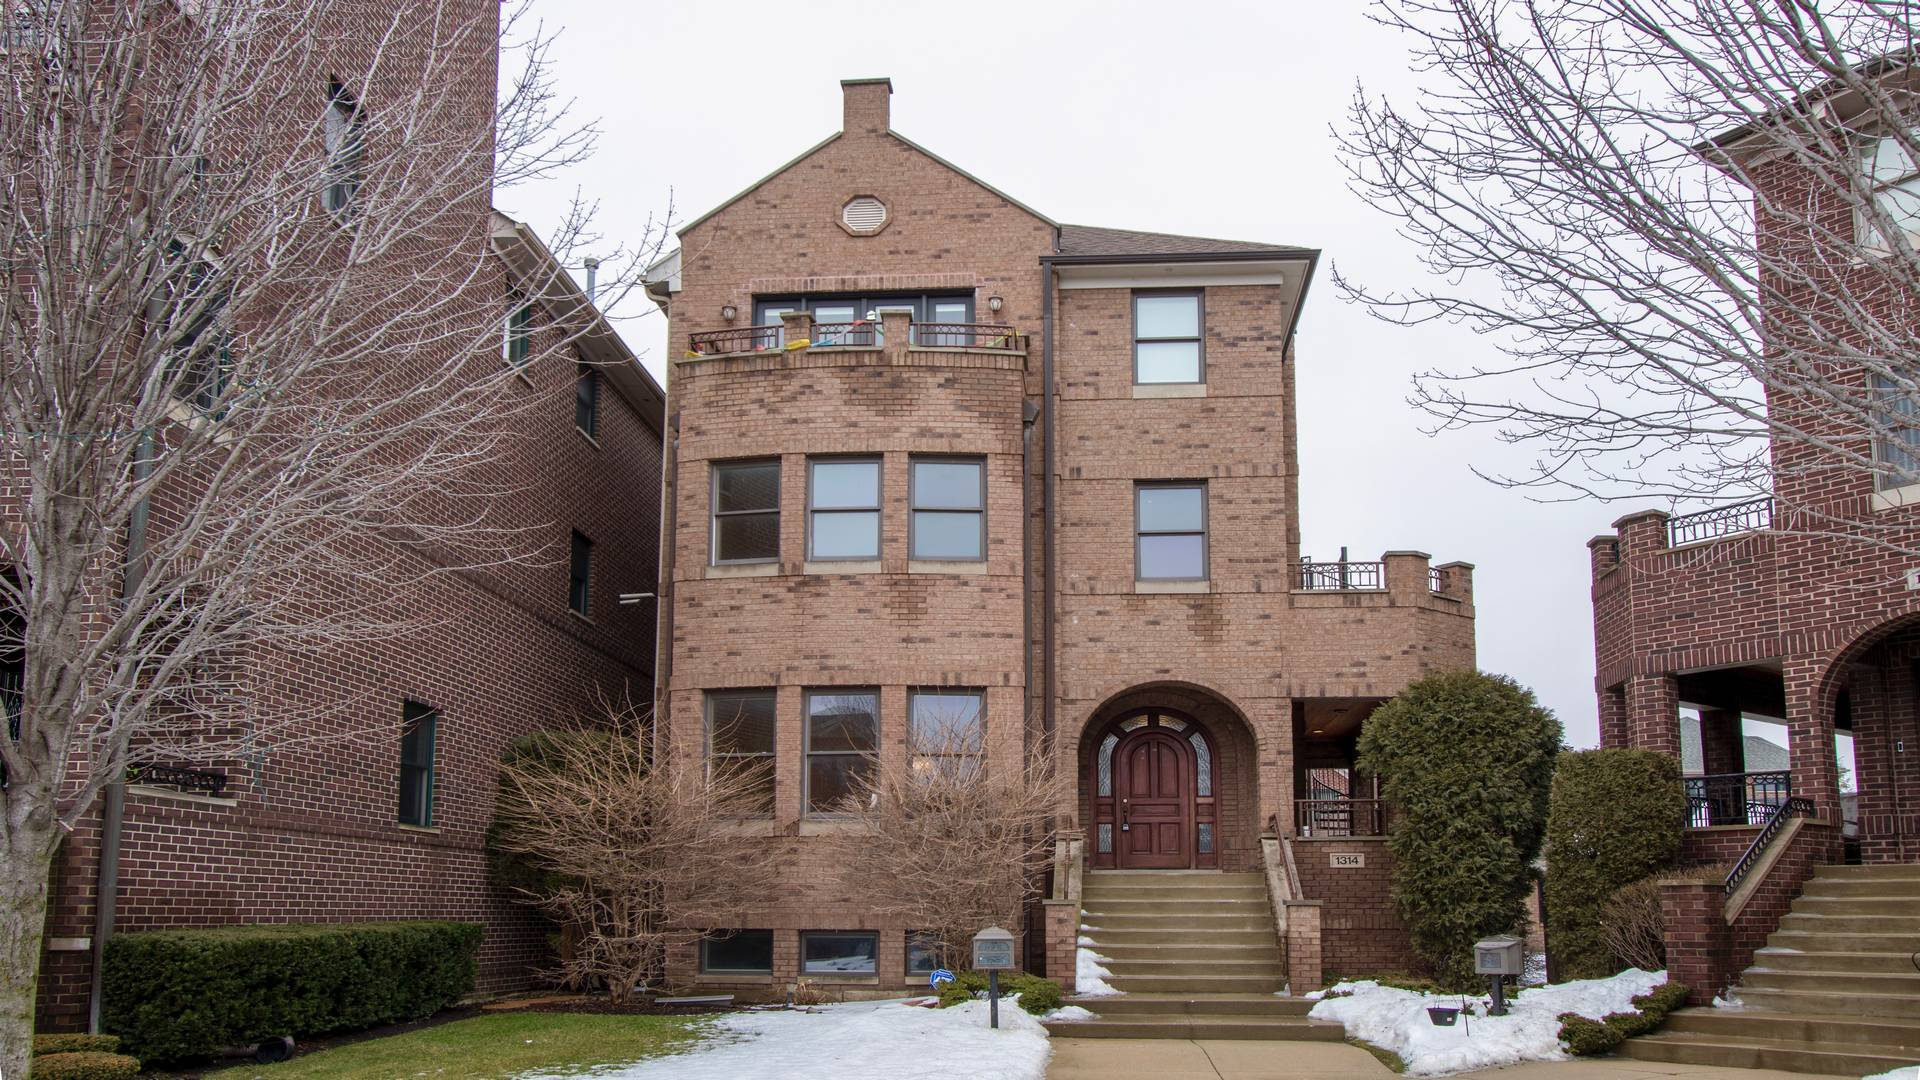 1314 WEST 33RD STREET, CHICAGO, IL 60608